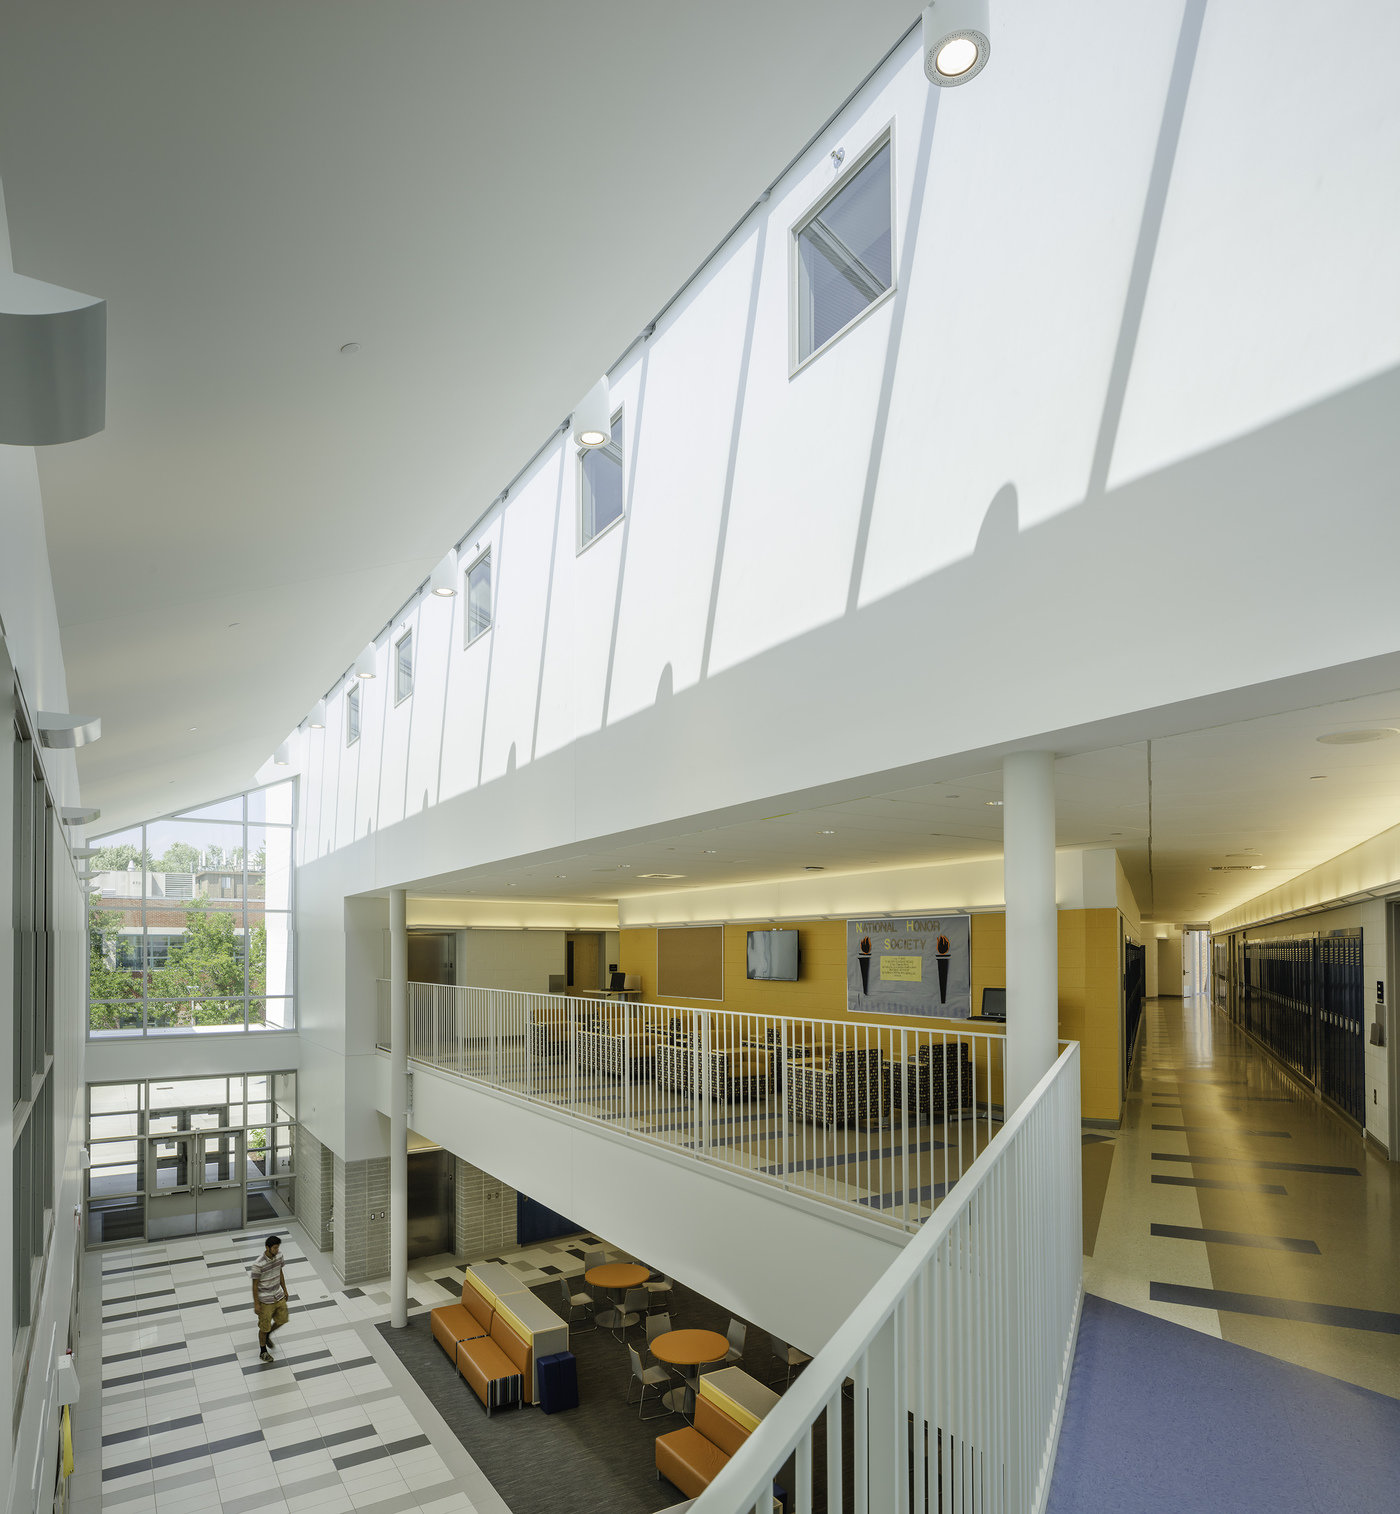 6 tskp hartford magnet trinity college academy interior view entrance halls upper level skylights1 1400 0x0x2775x3000 q85